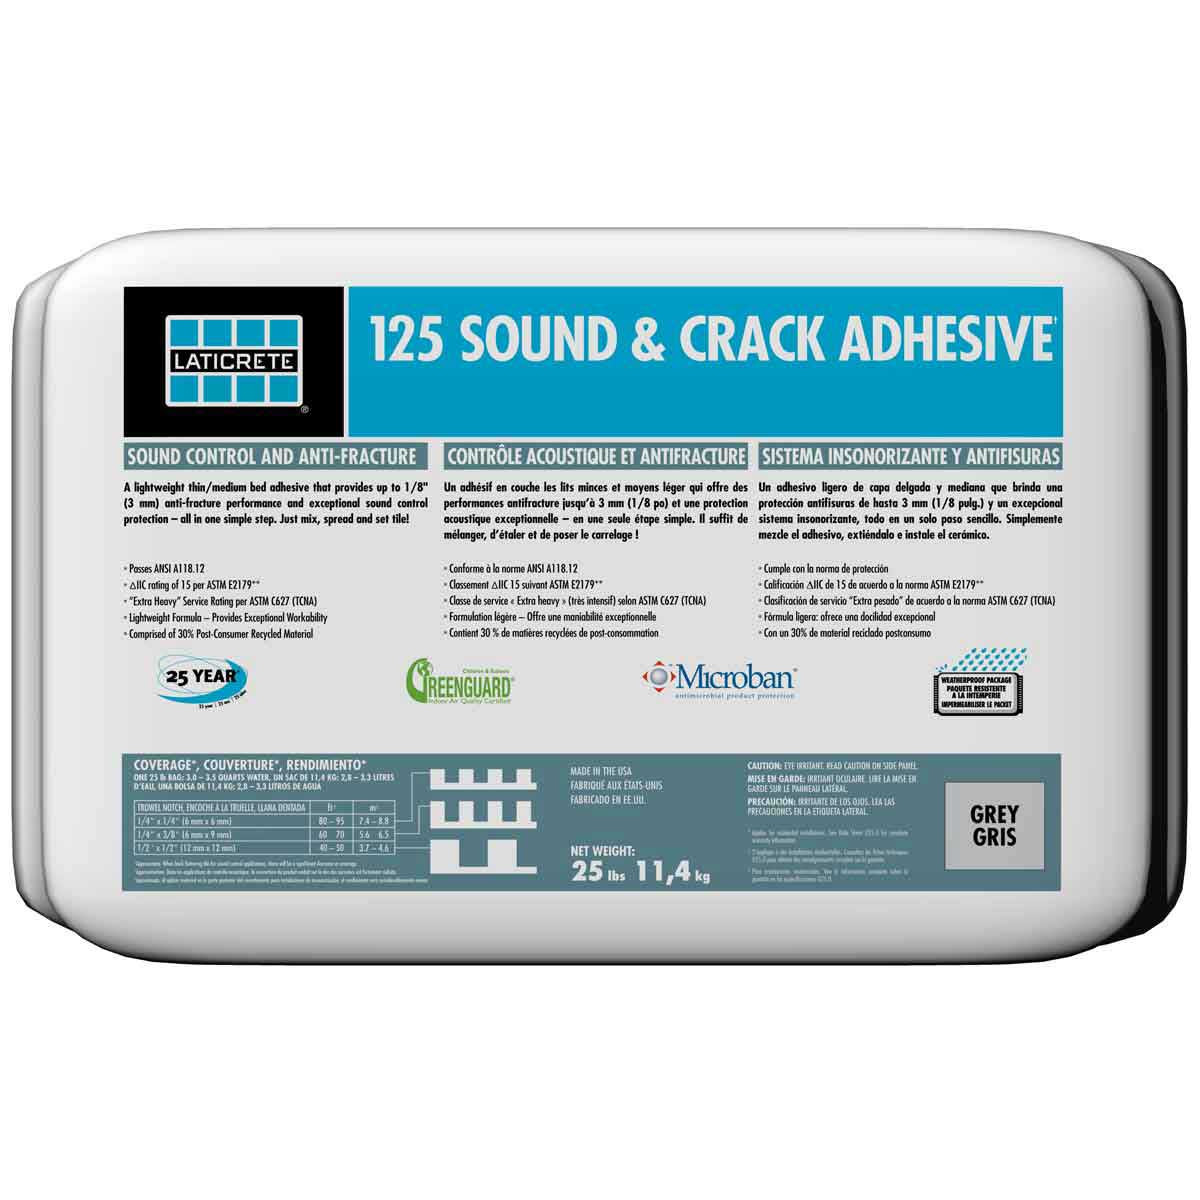 Laticrete 125 Sound & Crack Adhesive Mortar